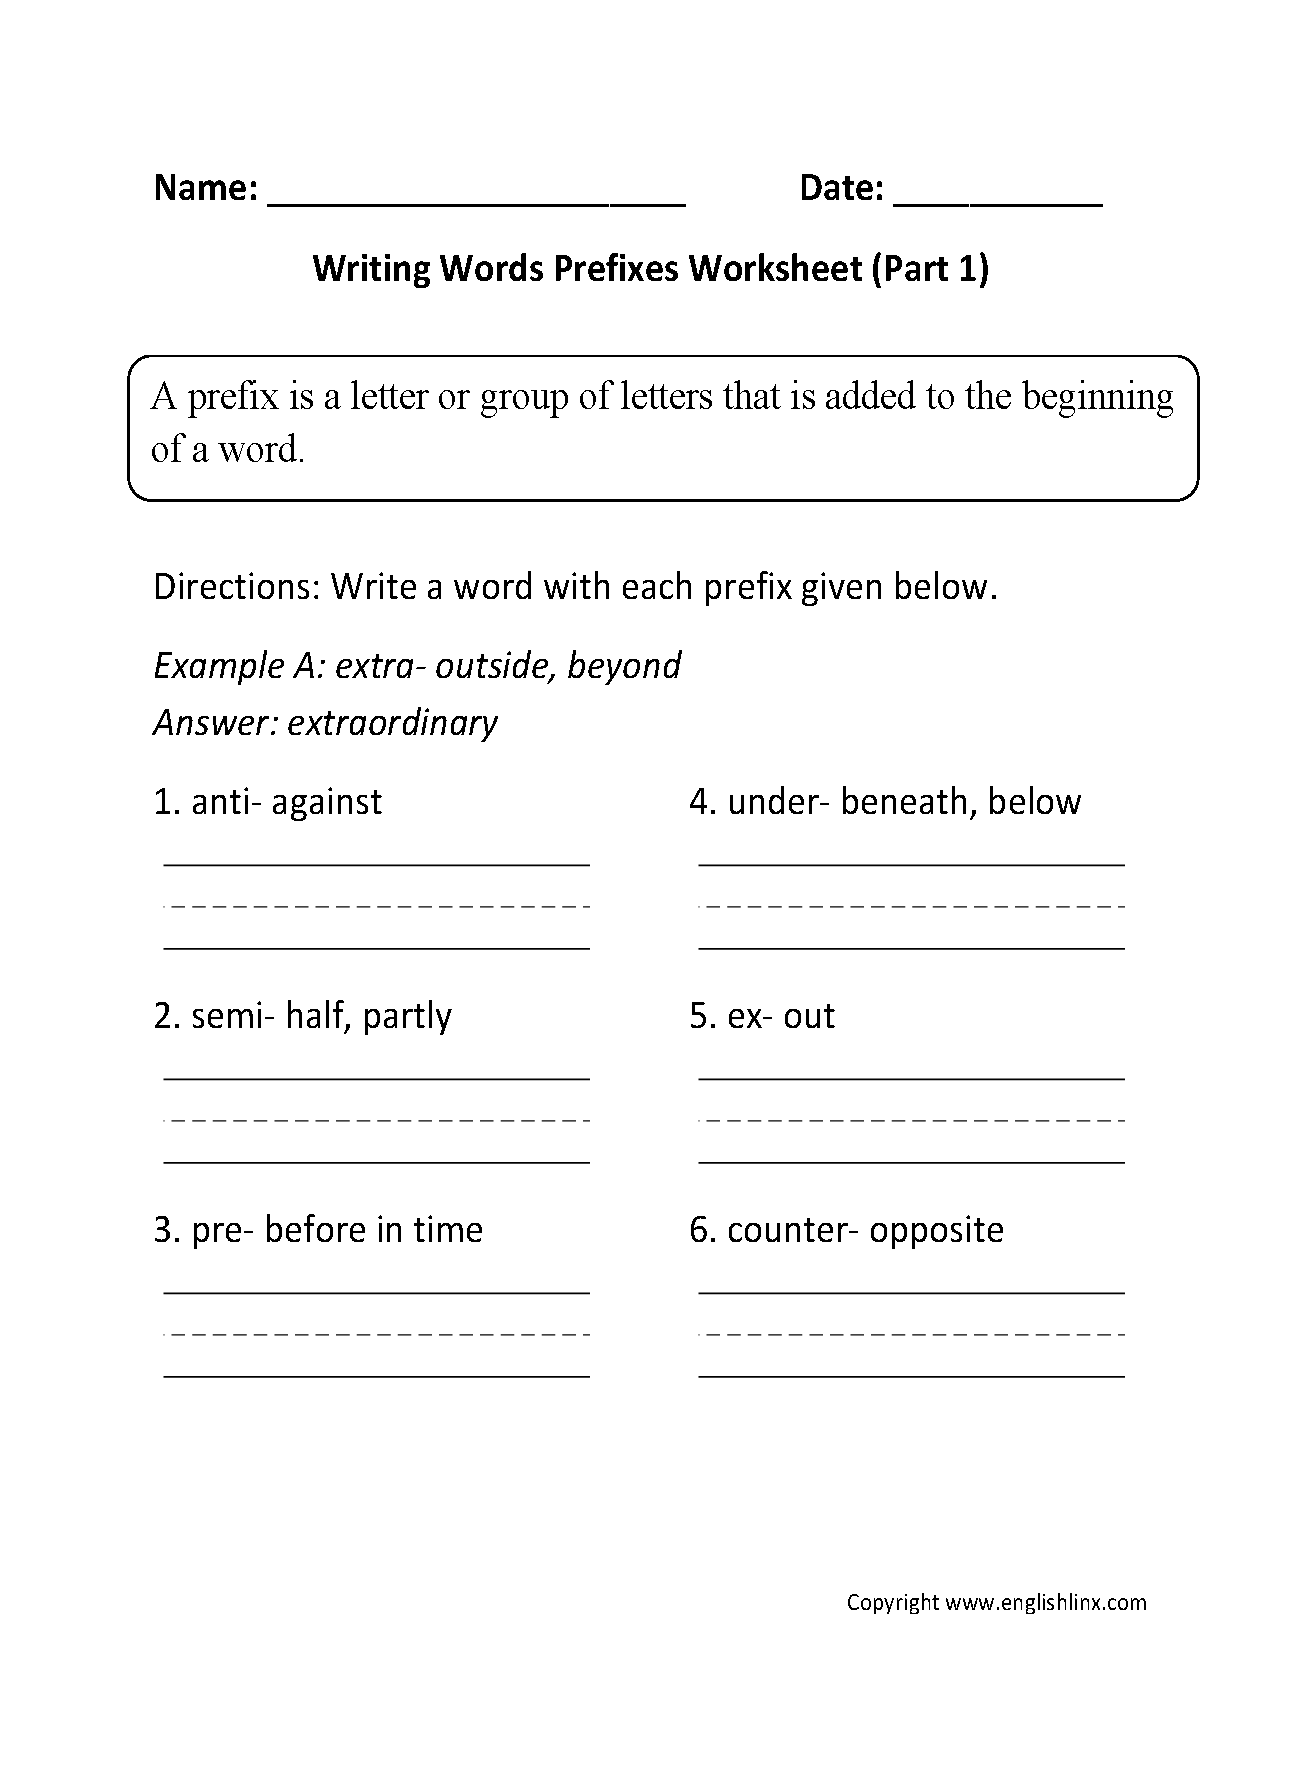 Worksheets 4th Grade Ela Worksheets englishlinx com prefixes worksheets worksheet part 1